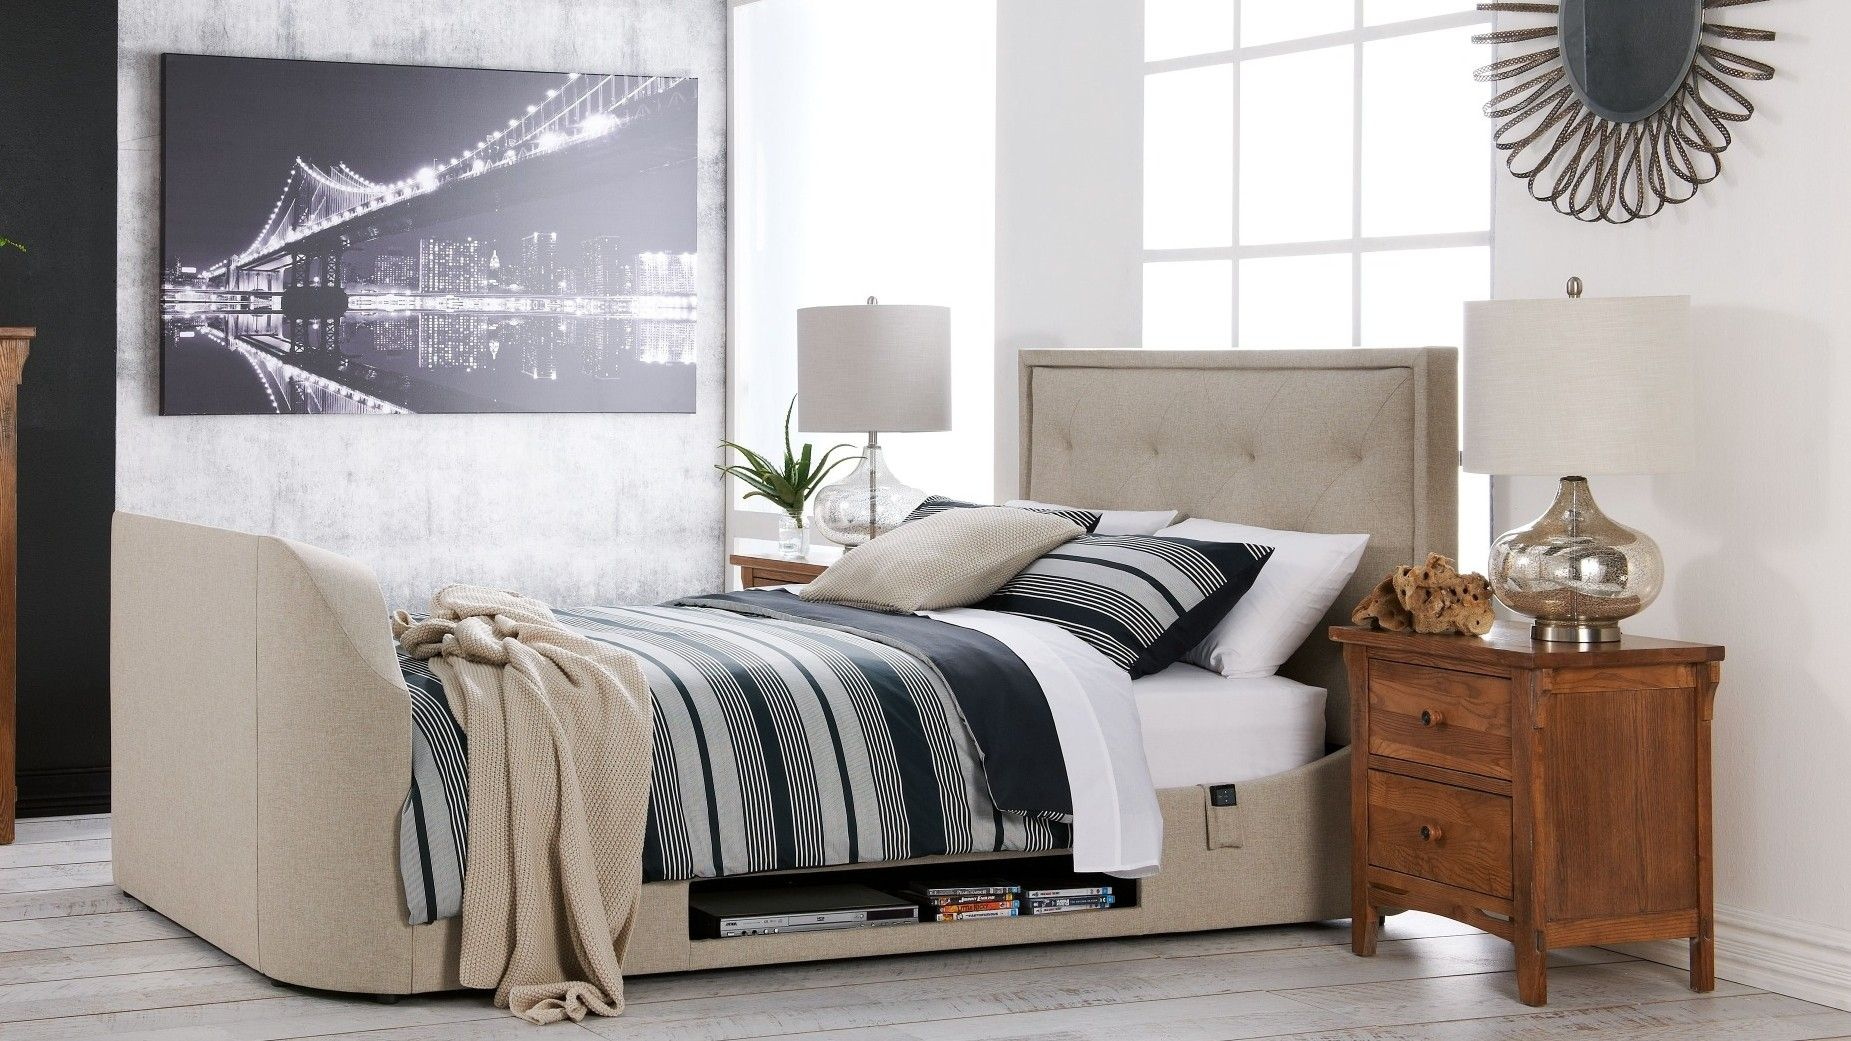 The Estates Media Queen Bed Is Ideal For Media Lovers And Is